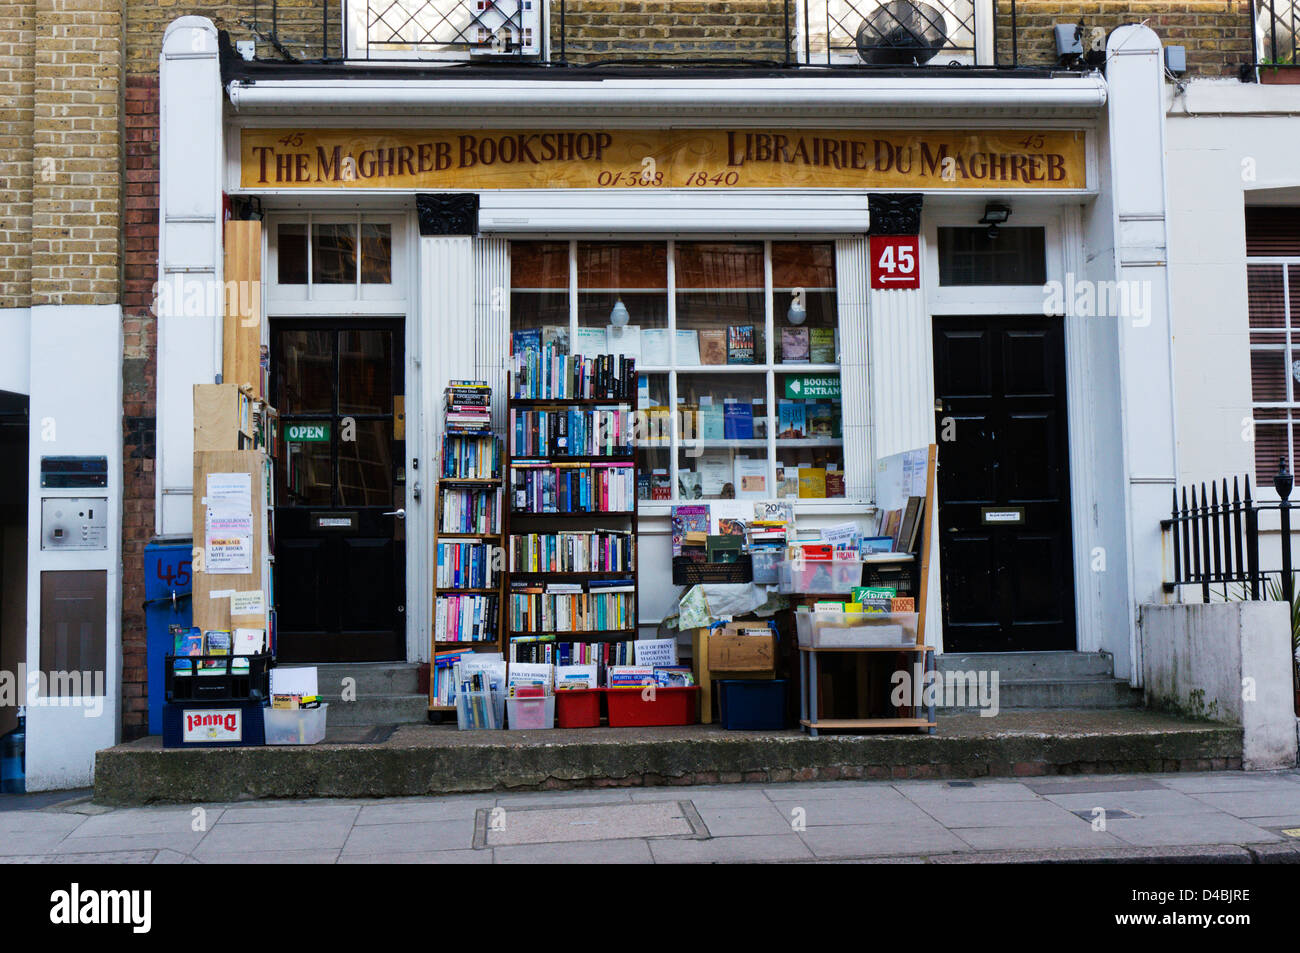 Books stacked on shelves outside The Maghreb Bookshop in Burton Street, Bloomsbury, London. - Stock Image